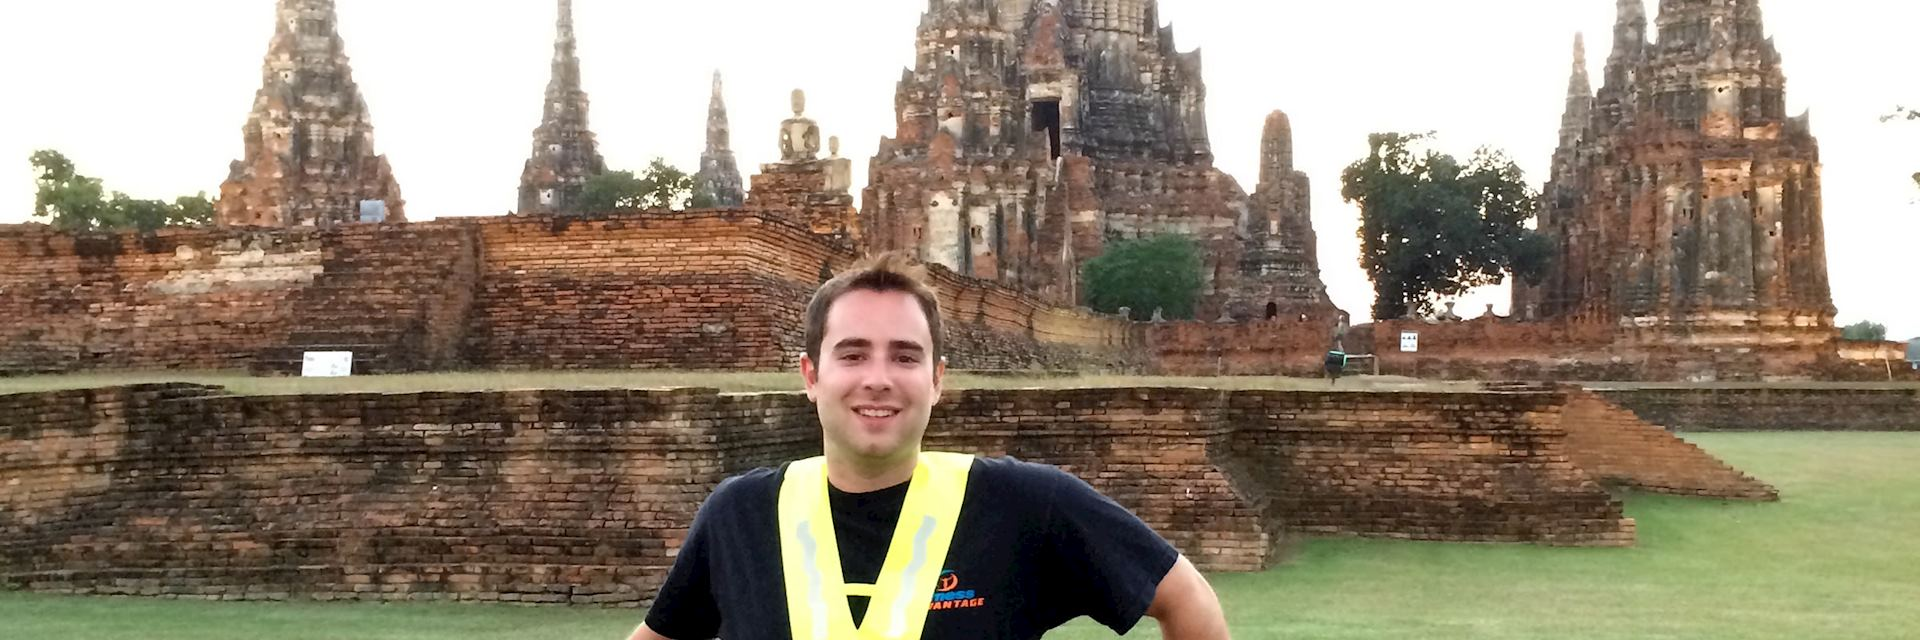 Matt on a bicycle excursion stops off at one of the ancient temples in Ayutthaya, Thailand